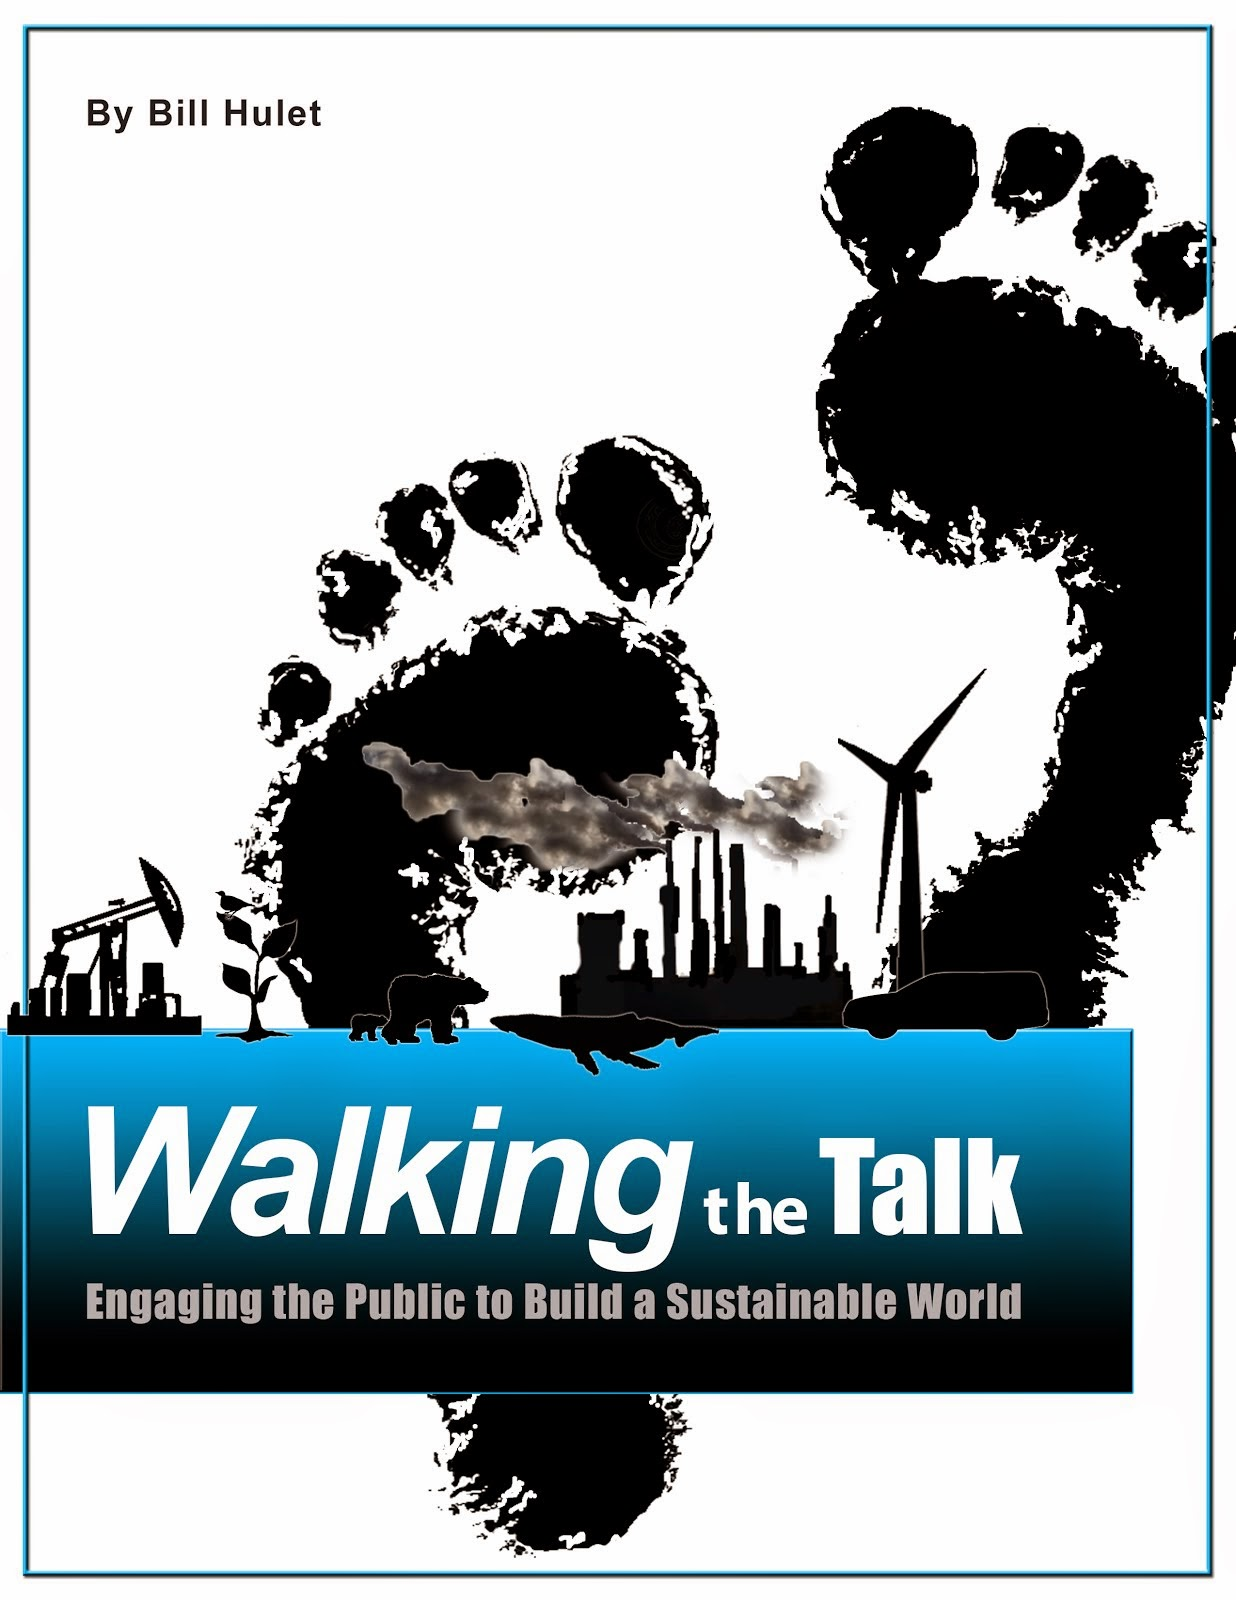 Walking the Talk:  Engaging the Public to Build a Sustainable World